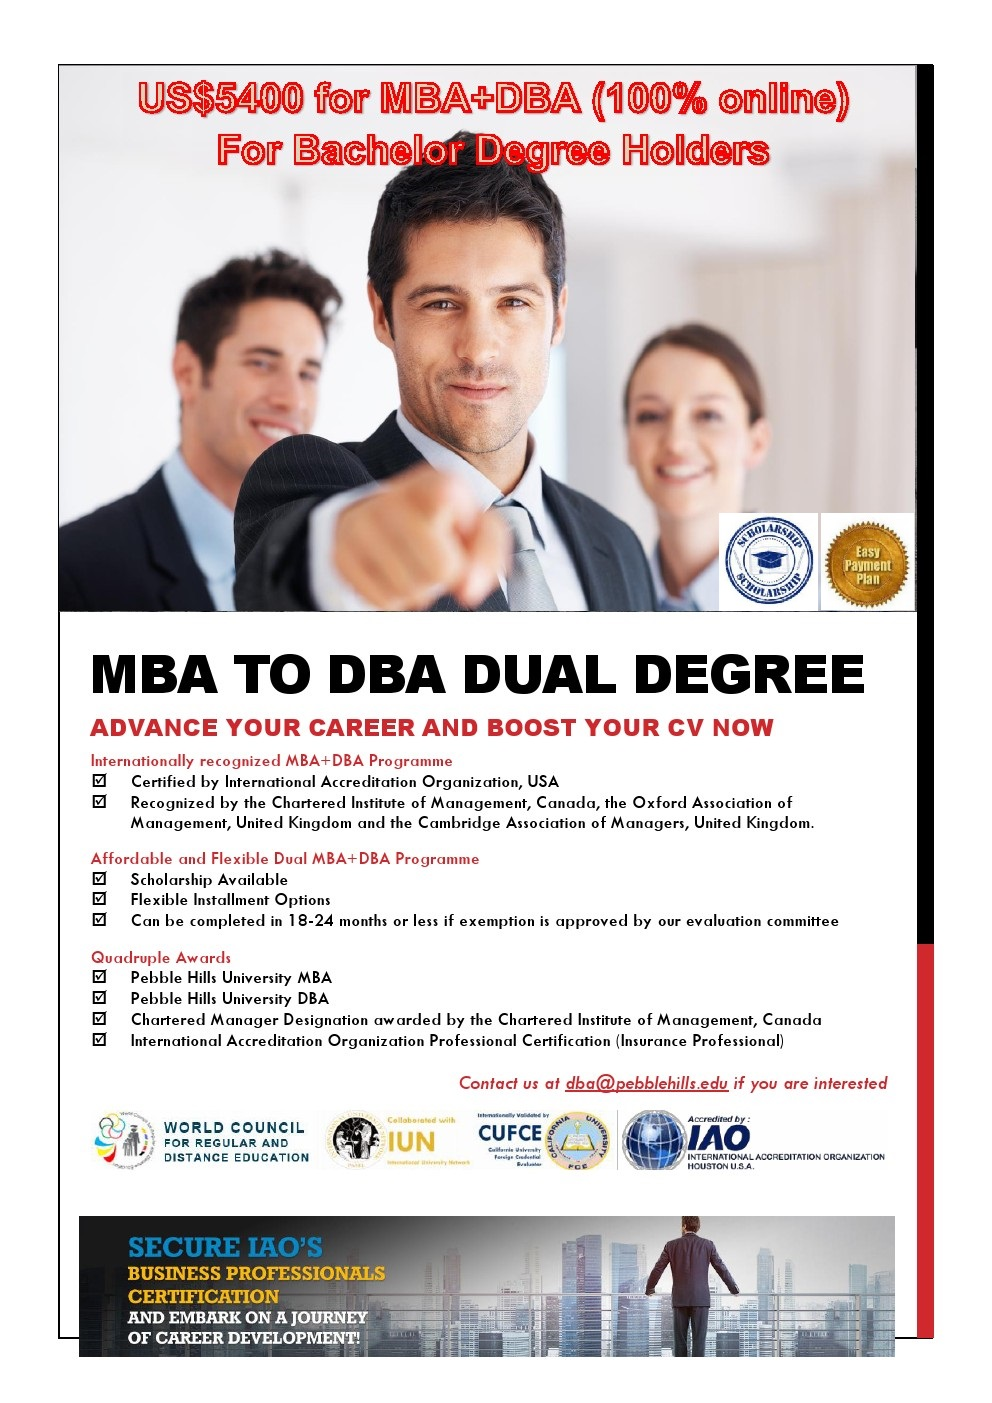 MBA DBA Dual Degree Brochure (for Bachelor)